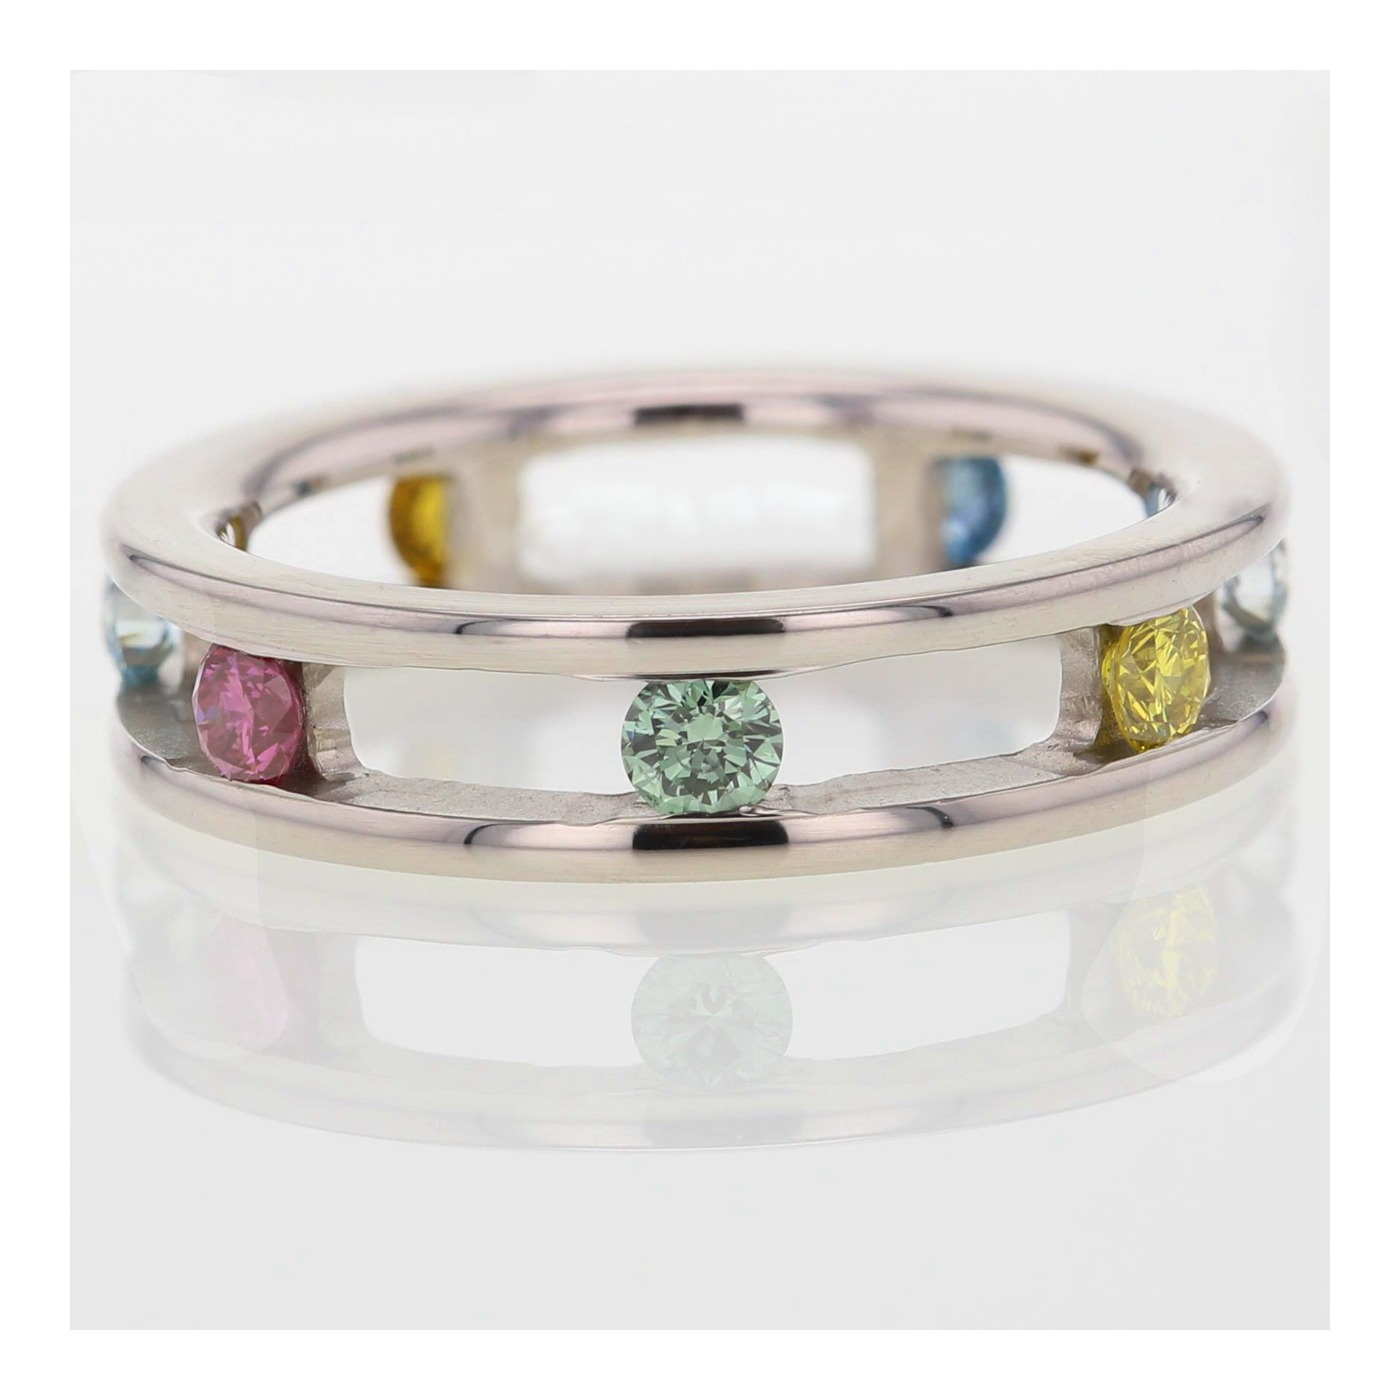 18ct White gold diamond ring with coloured stones.